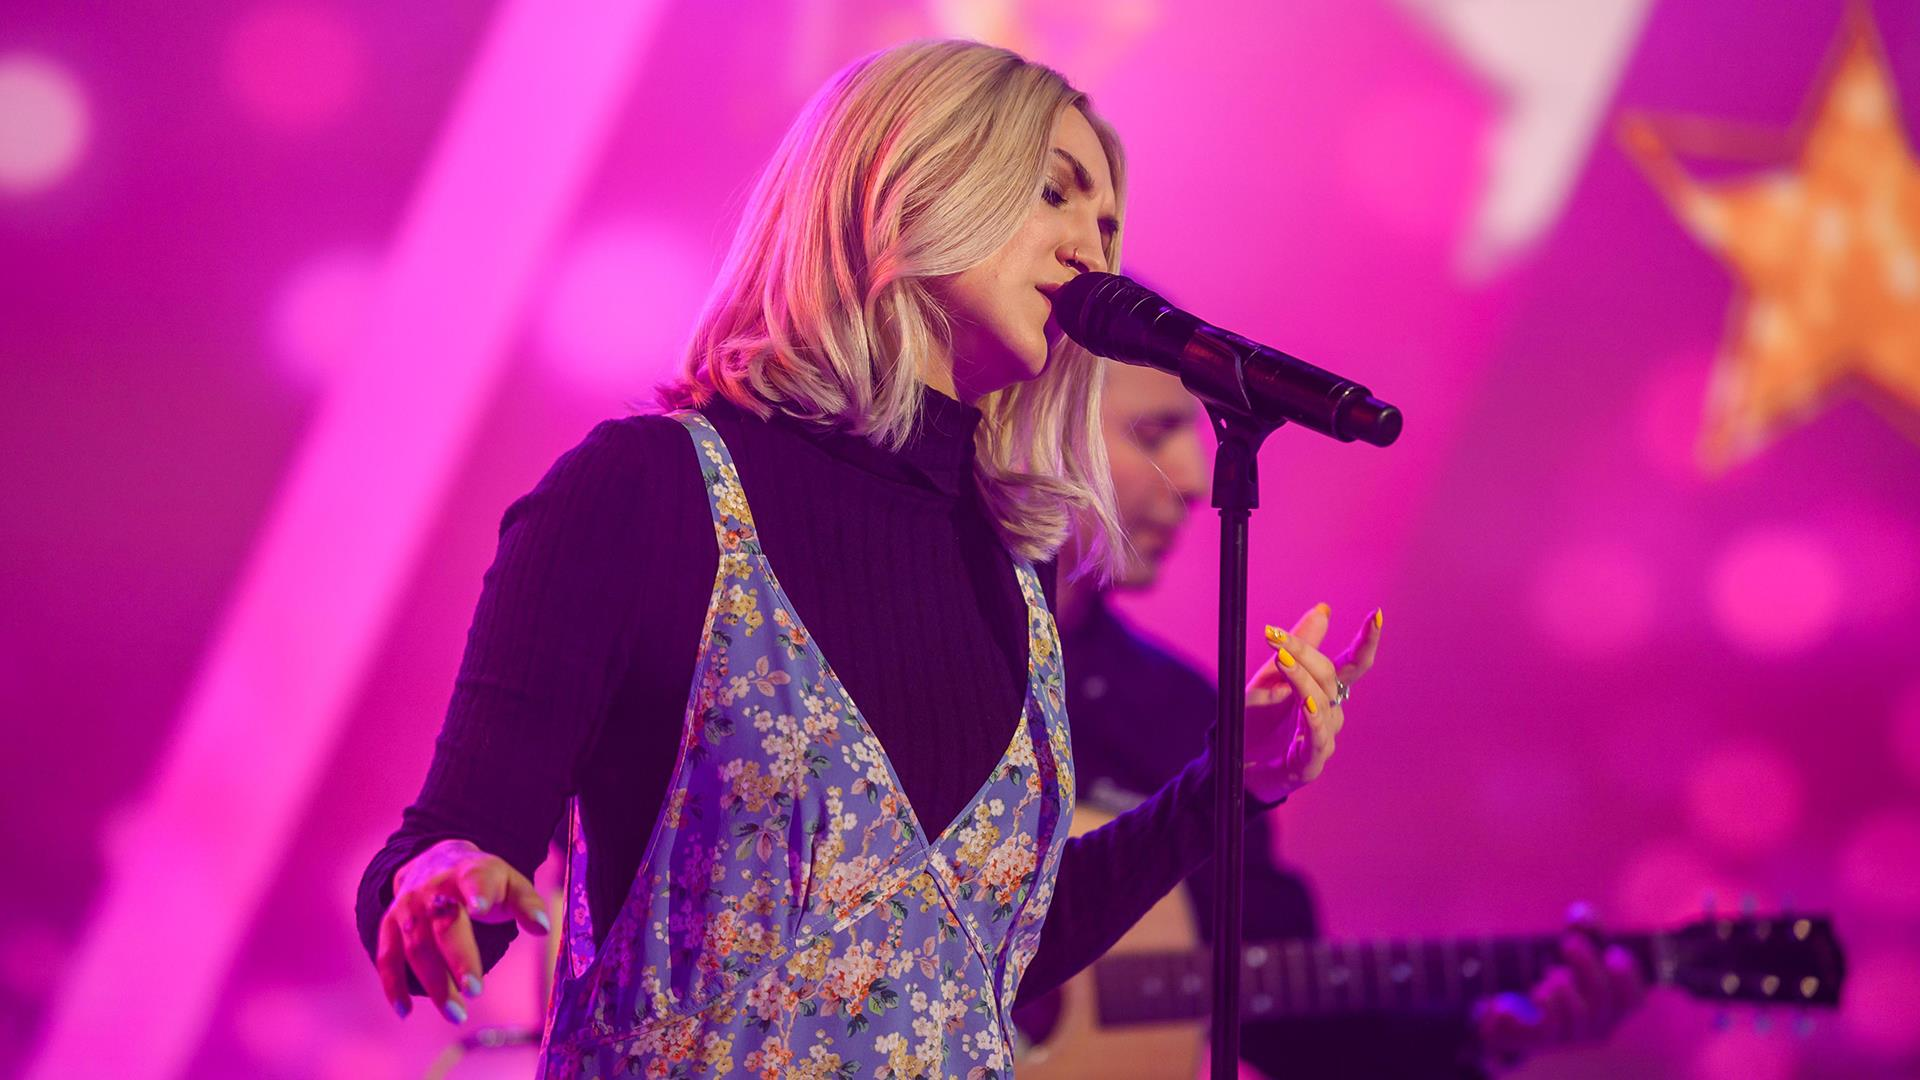 Watch Julia Michaels sing 'Anxiety' live on TODAY